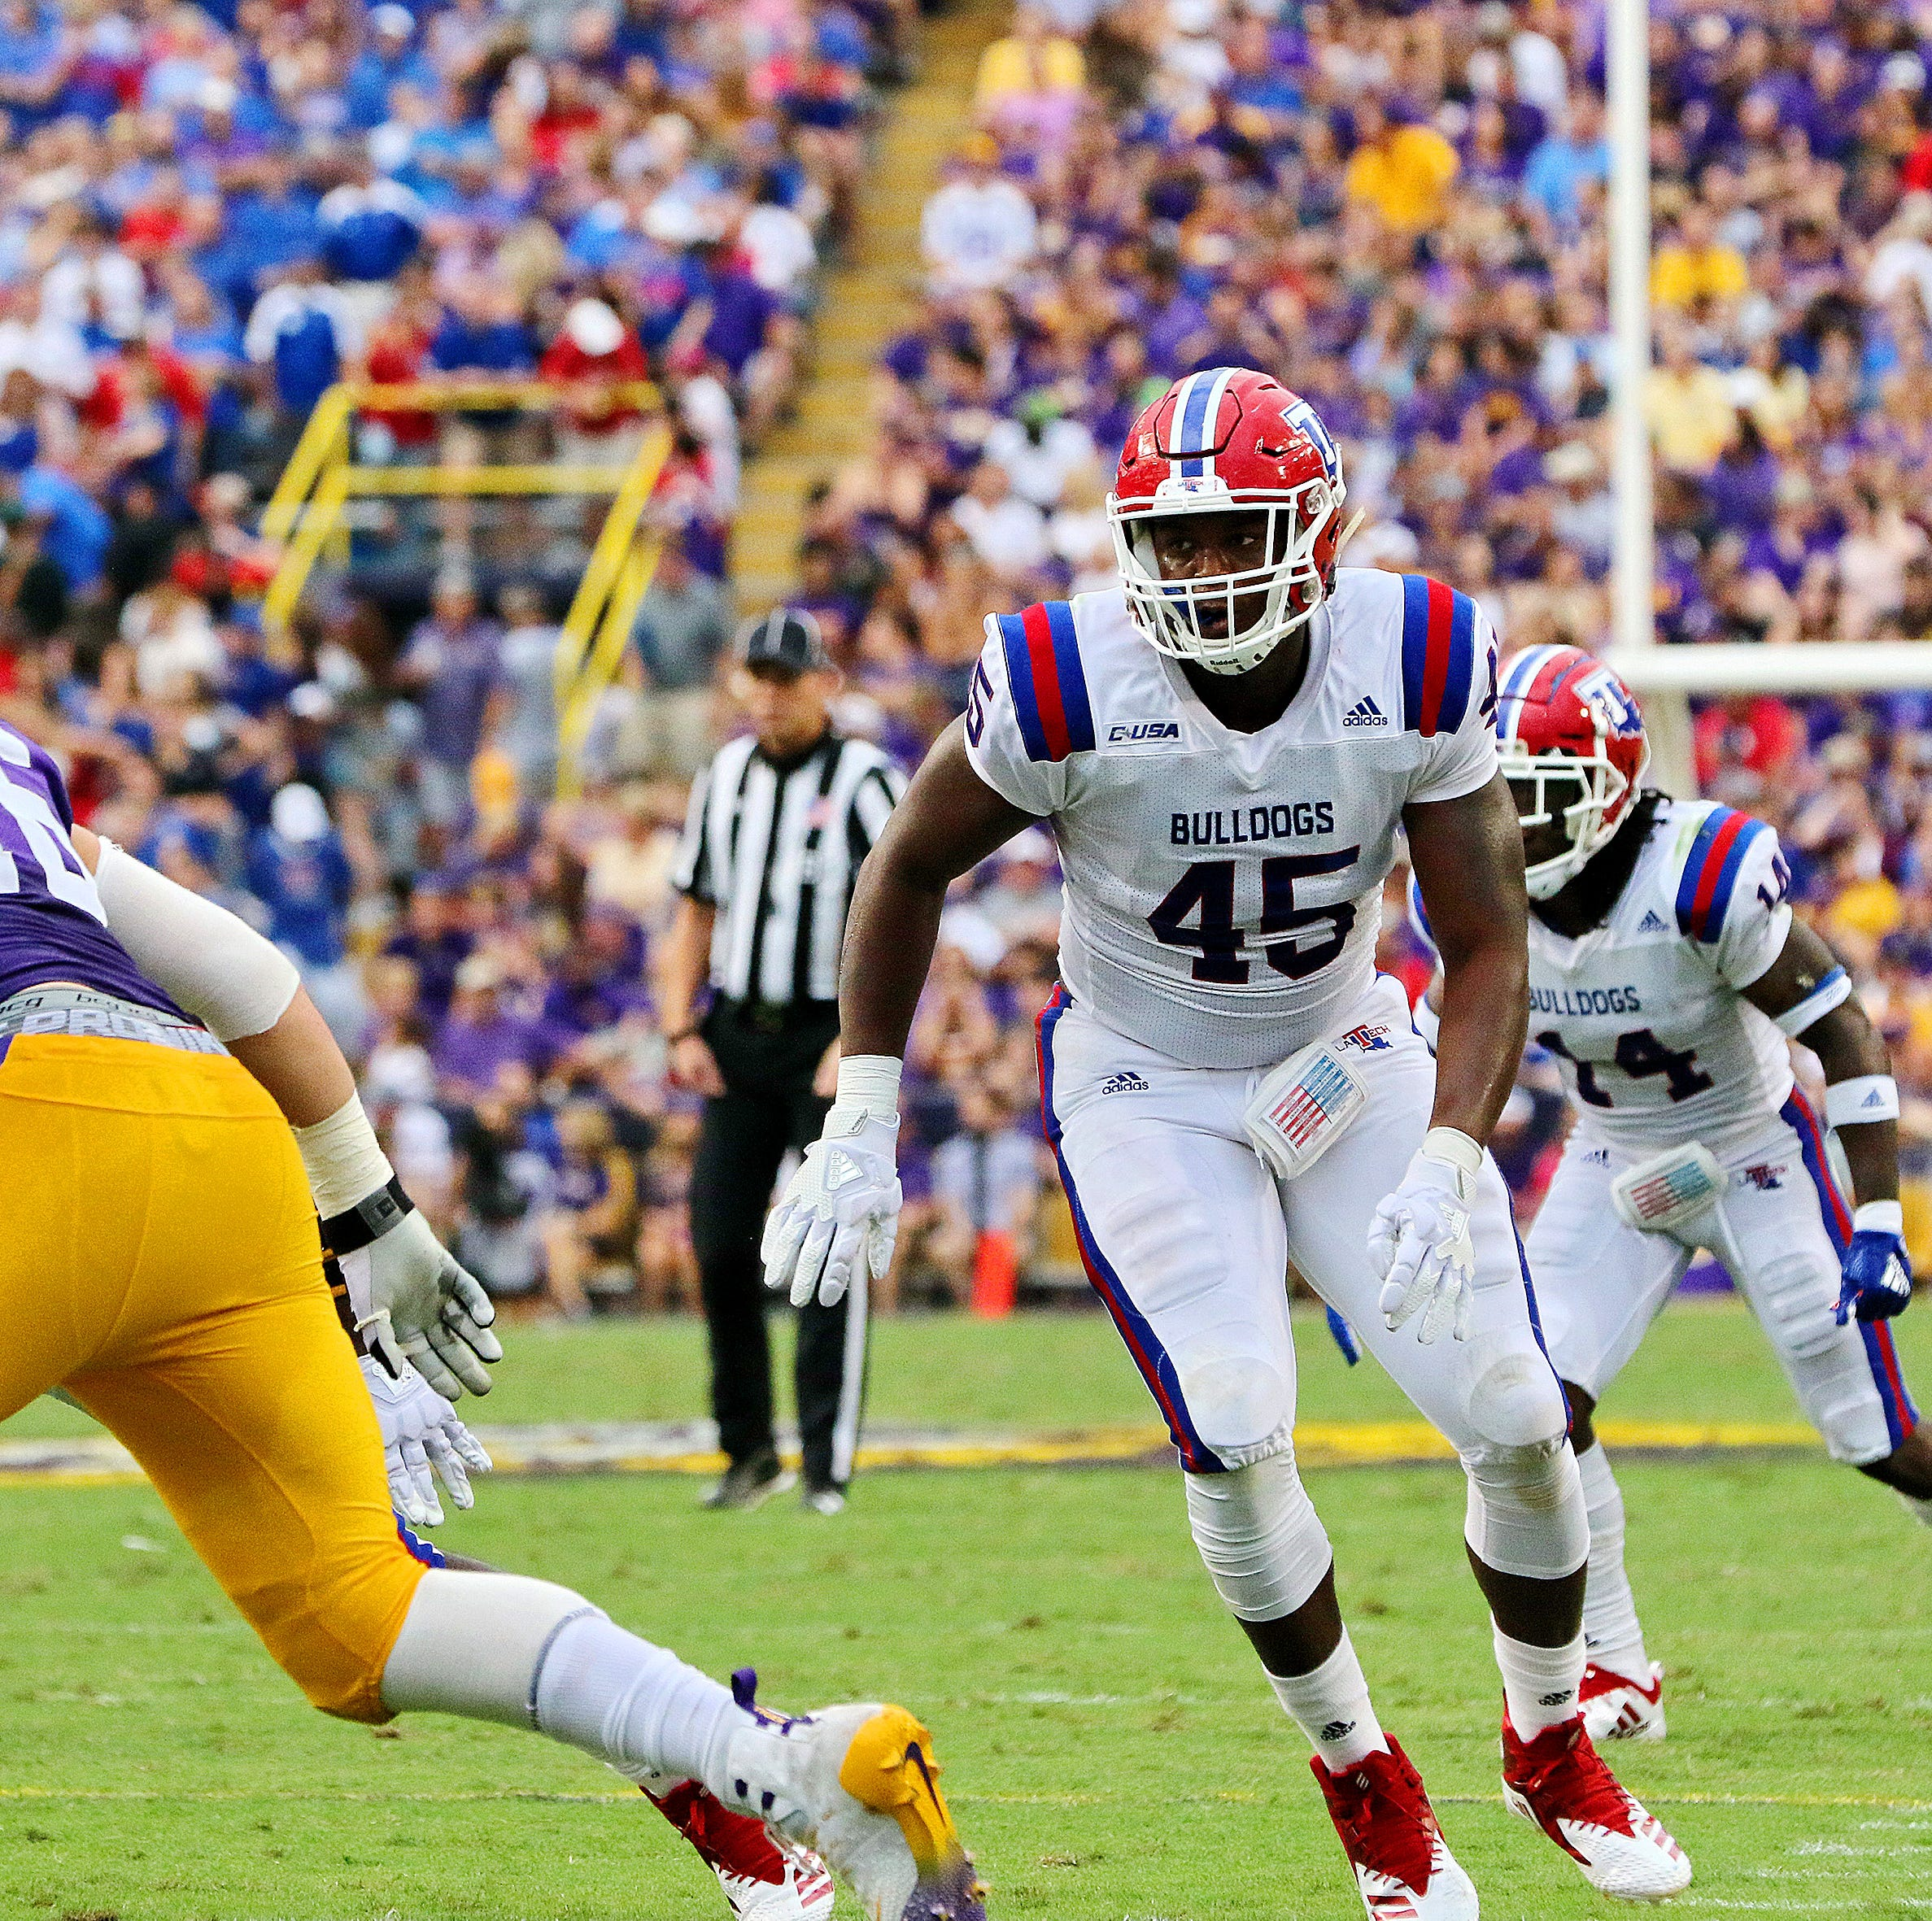 Louisiana Tech's Jaylon Ferguson earns third-team AP All-American selection